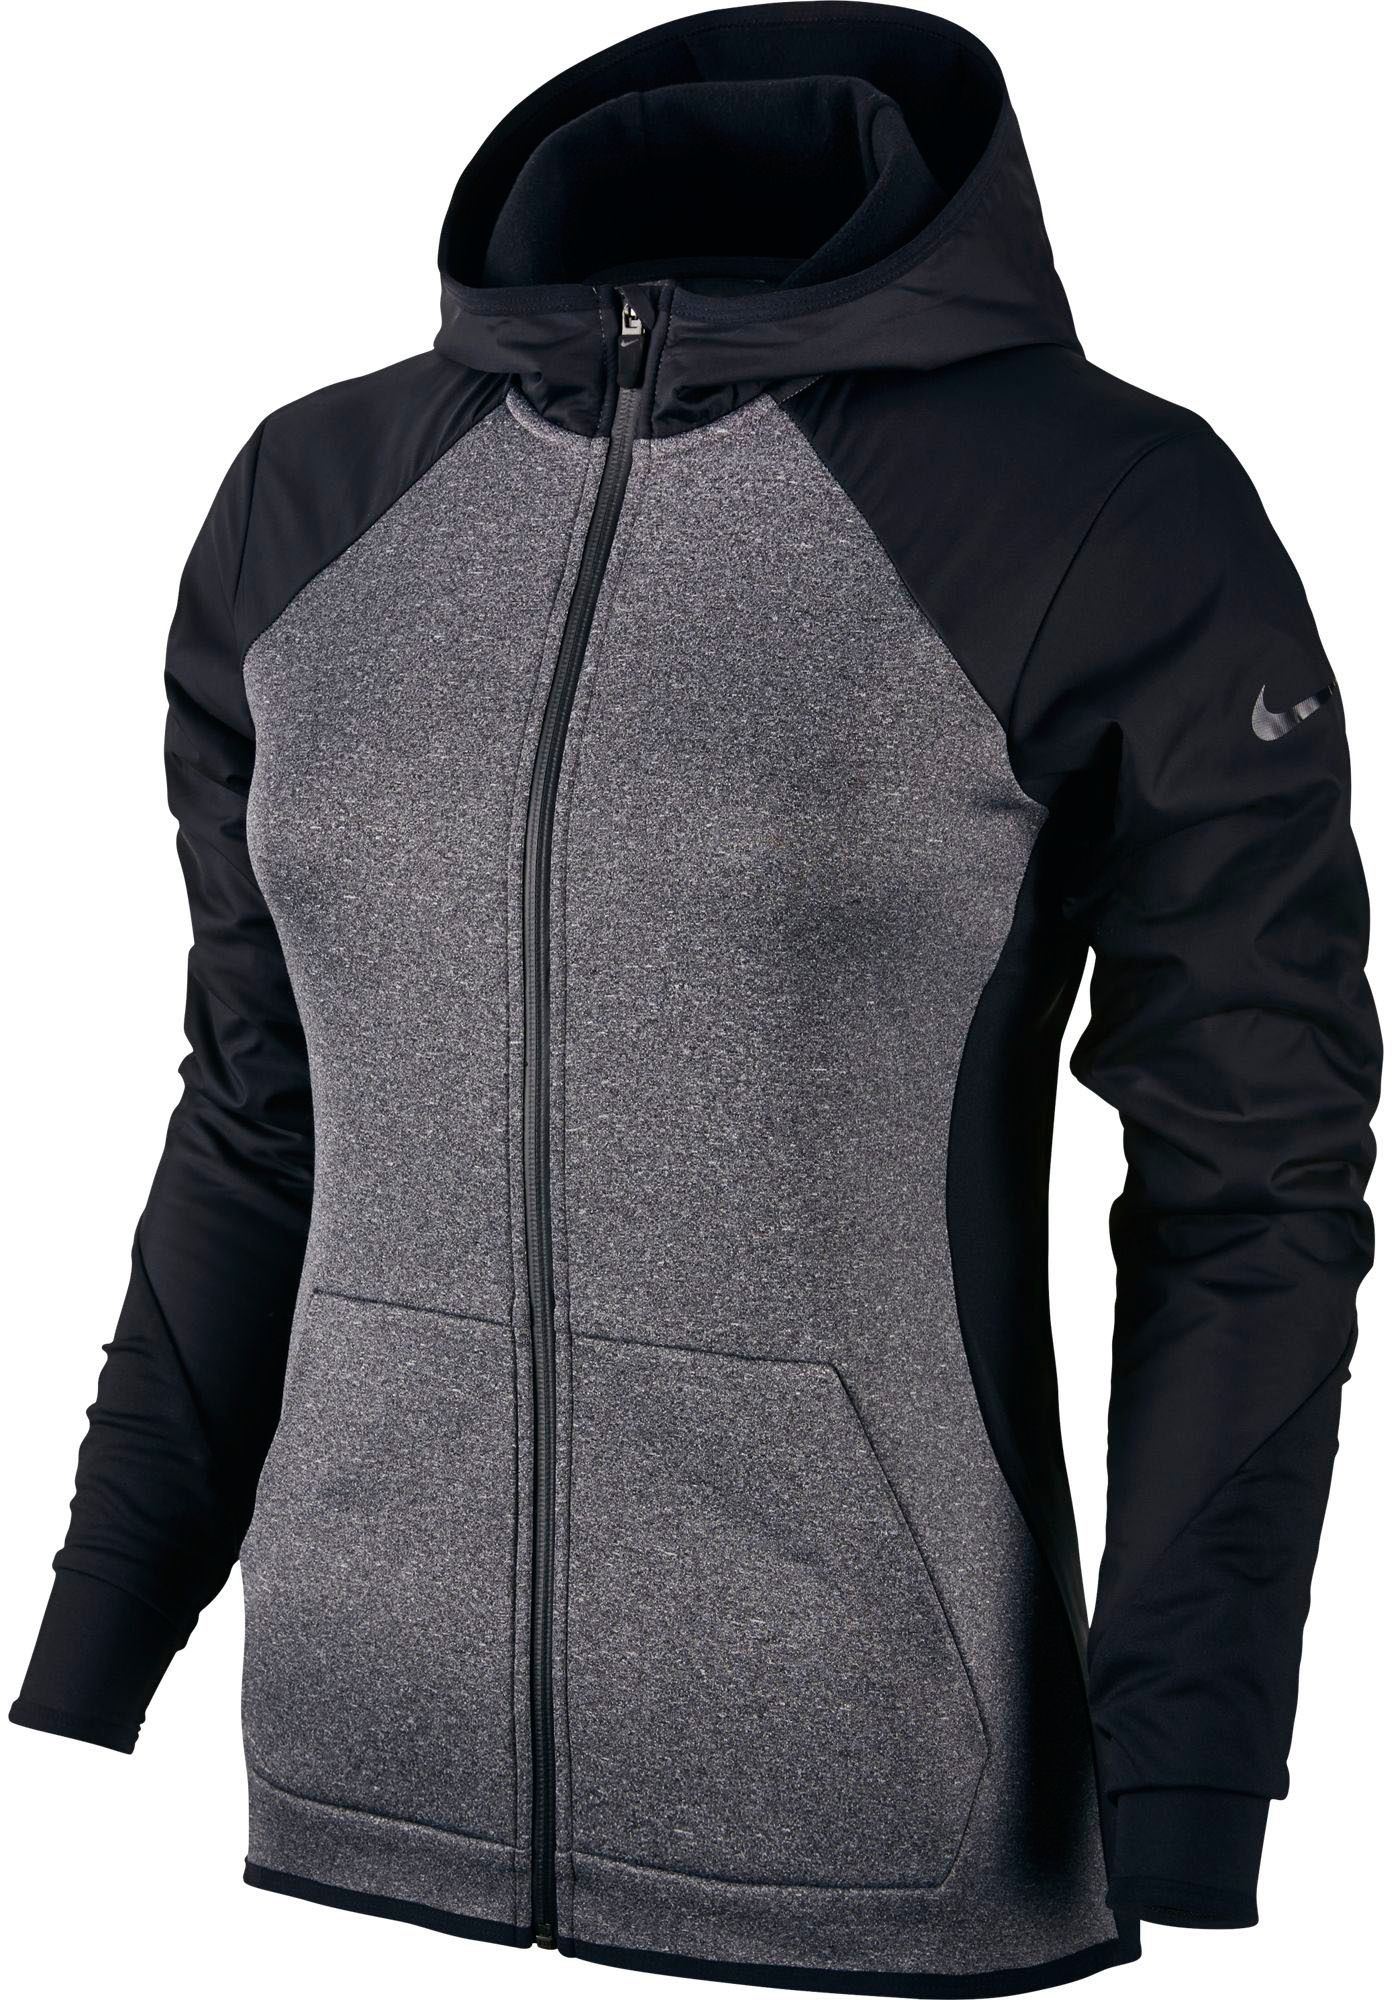 Women's Zip Up Hoodies | DICK'S Sporting Goods